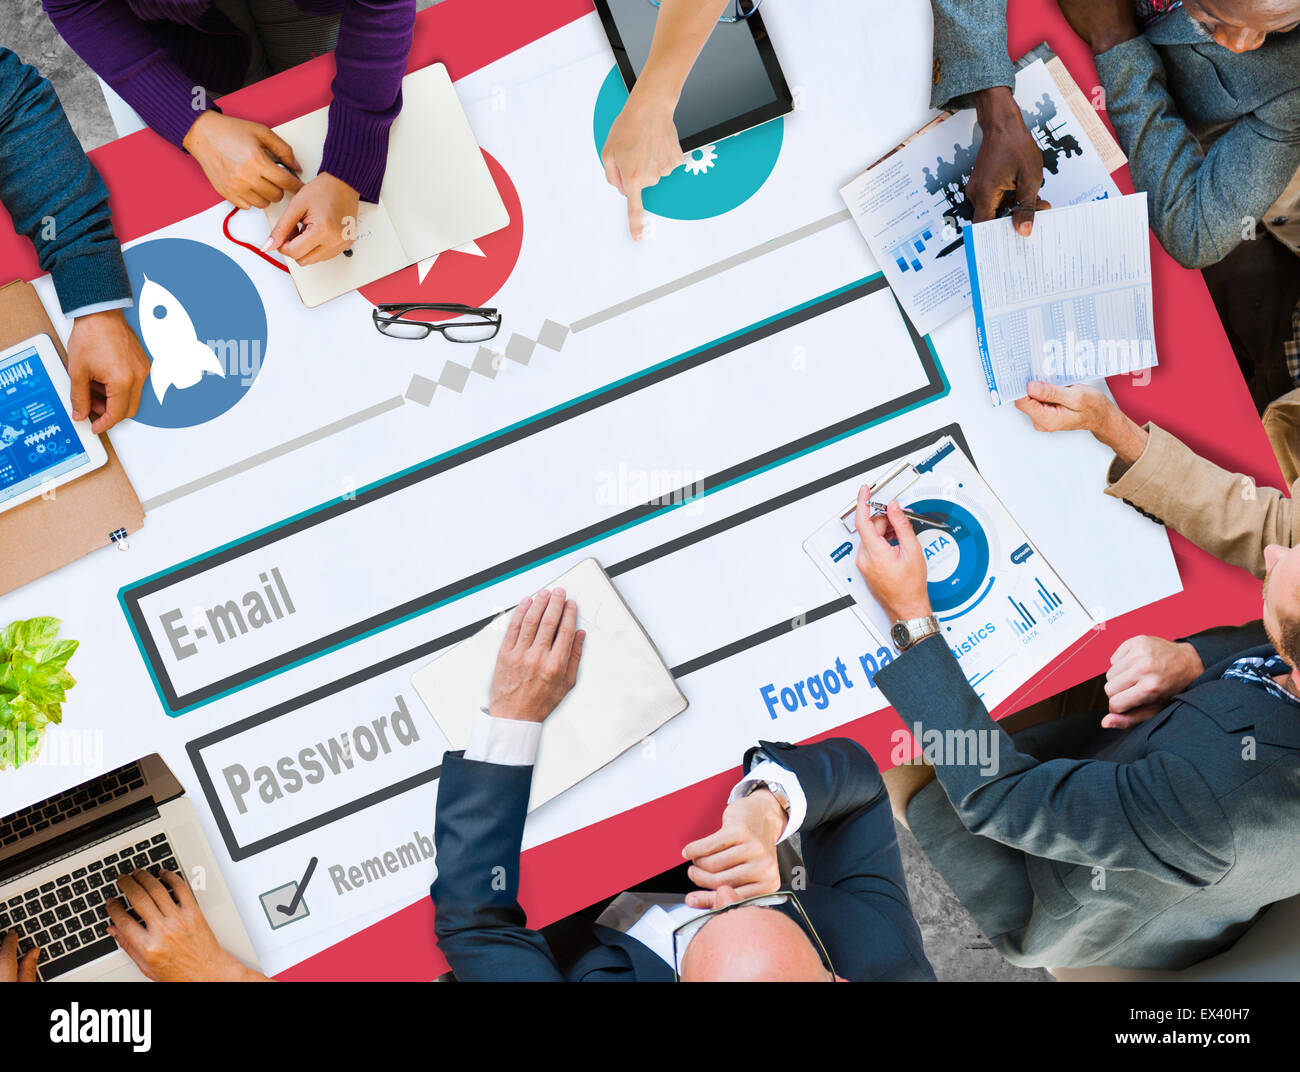 E-mail Identity Password Membership Sing In Web Page Concept - Stock Image